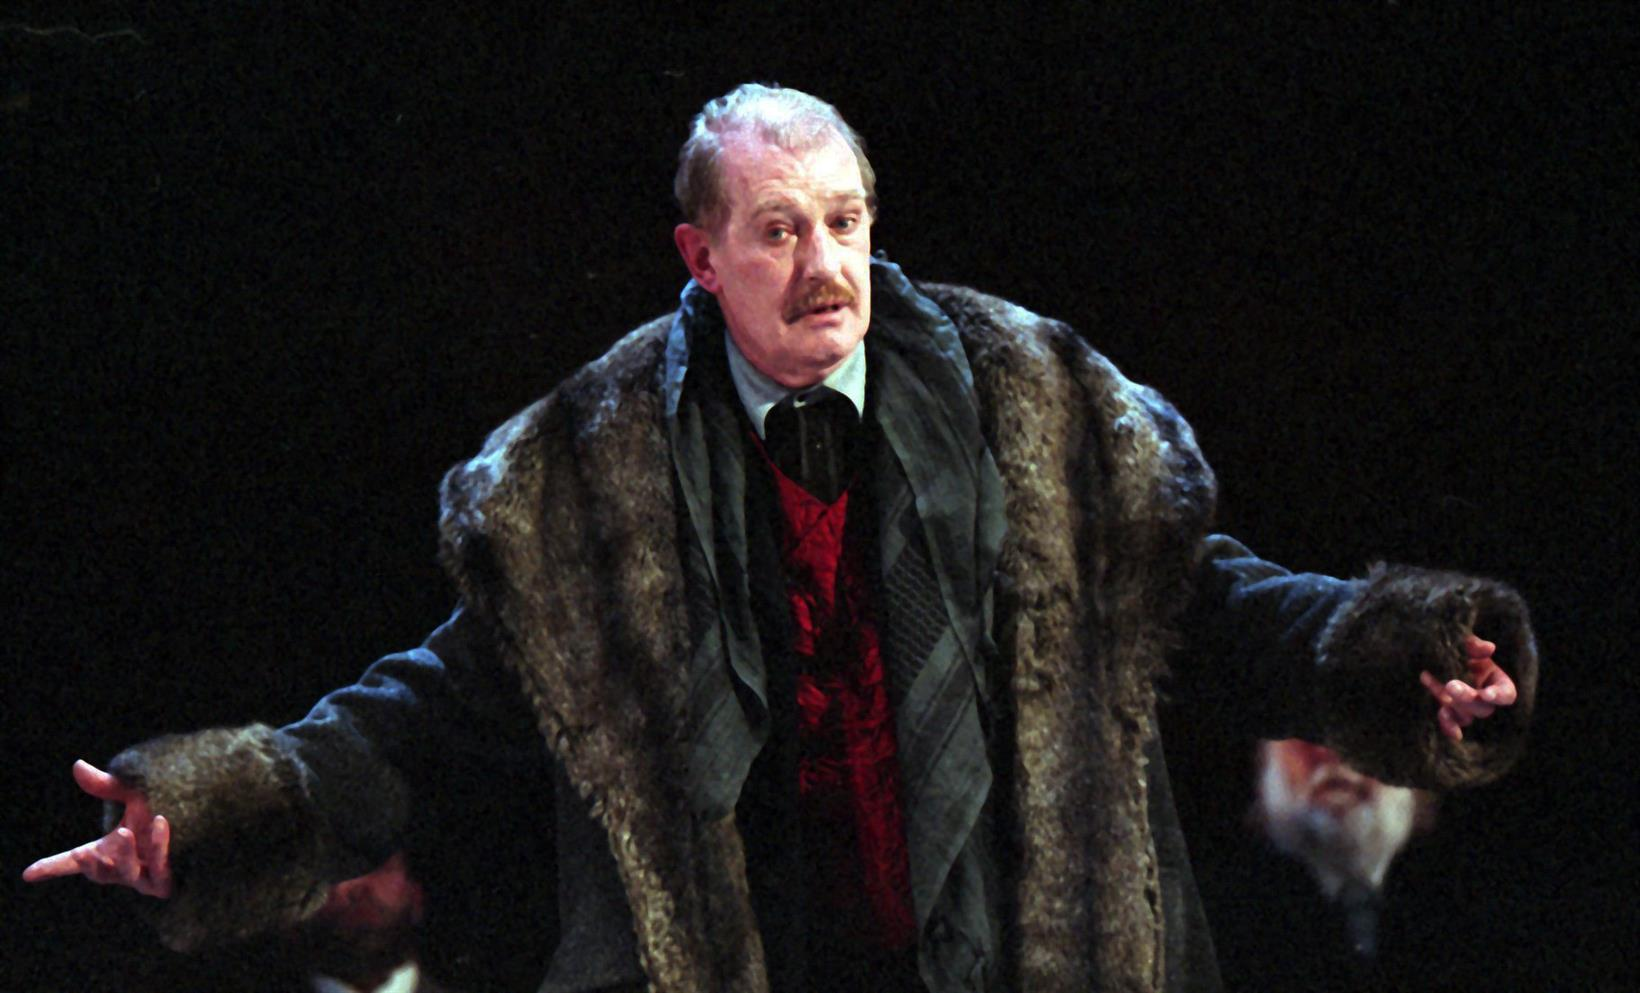 Bare-headed older man with moustache wearing a heavy fur-trimmed coat and holding out his arms